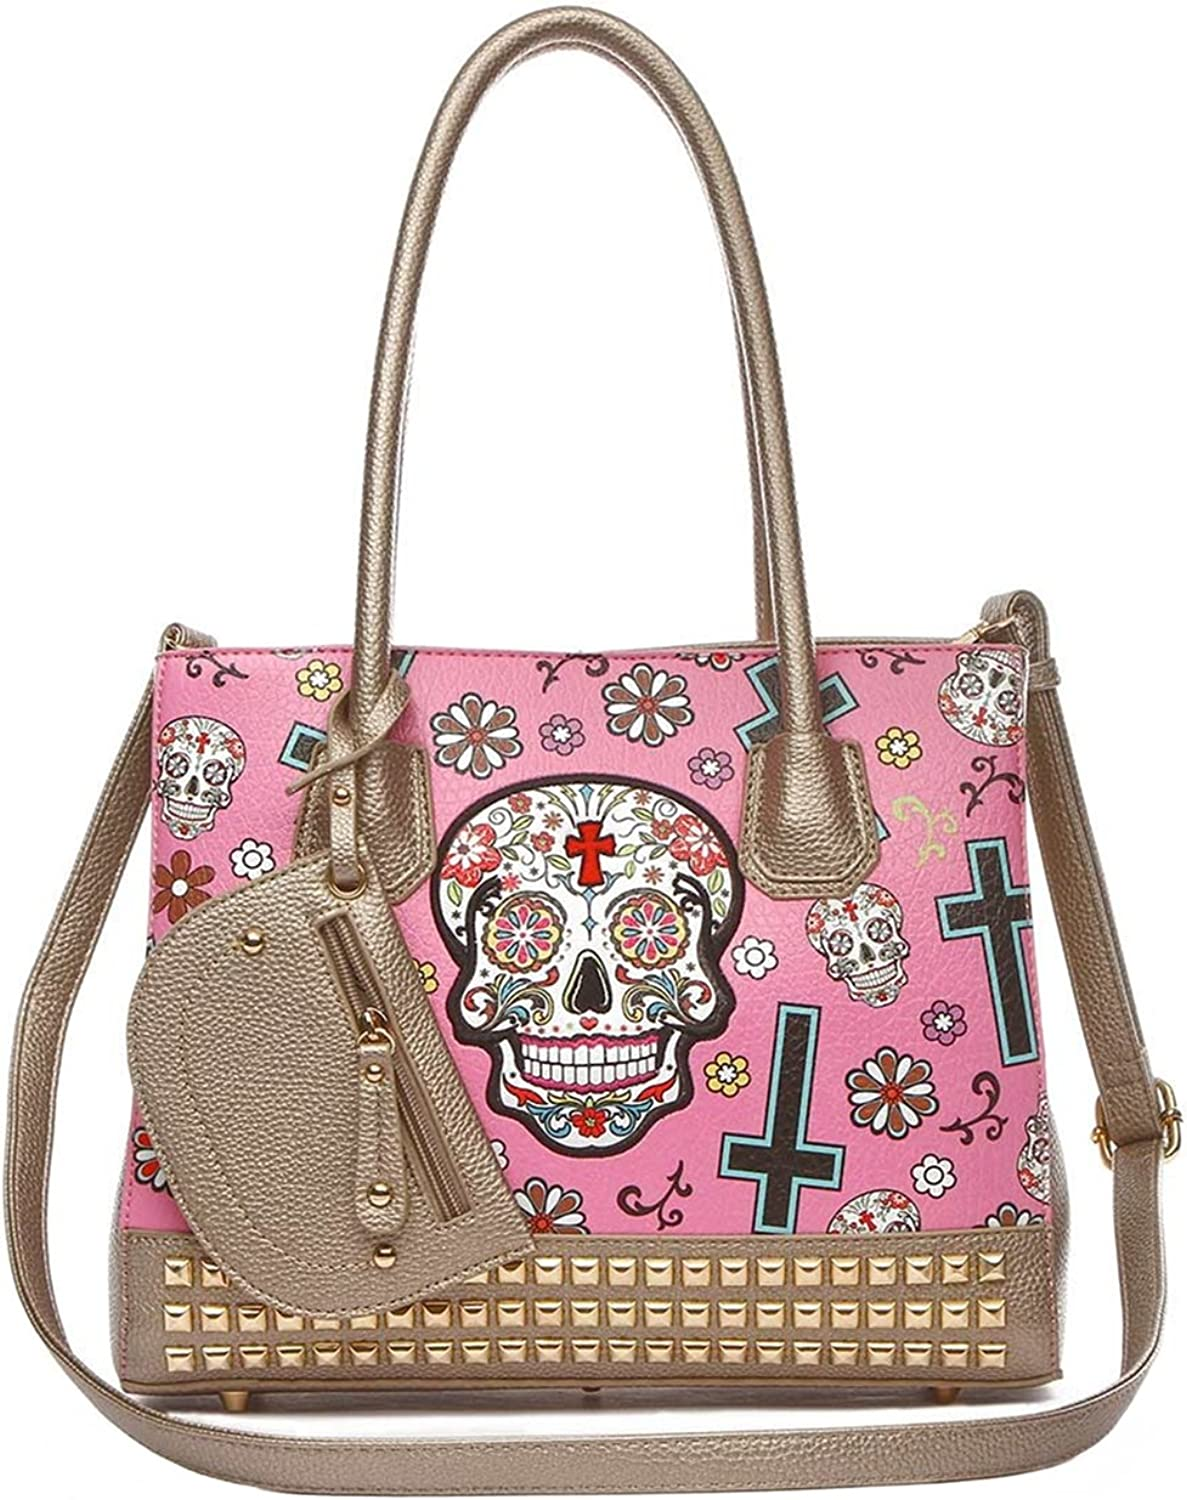 Cowgirl Trendy Sugar Skull Day of the Dead Women's Studded Purse Western Totes Handbag Shoulder Bag Pink